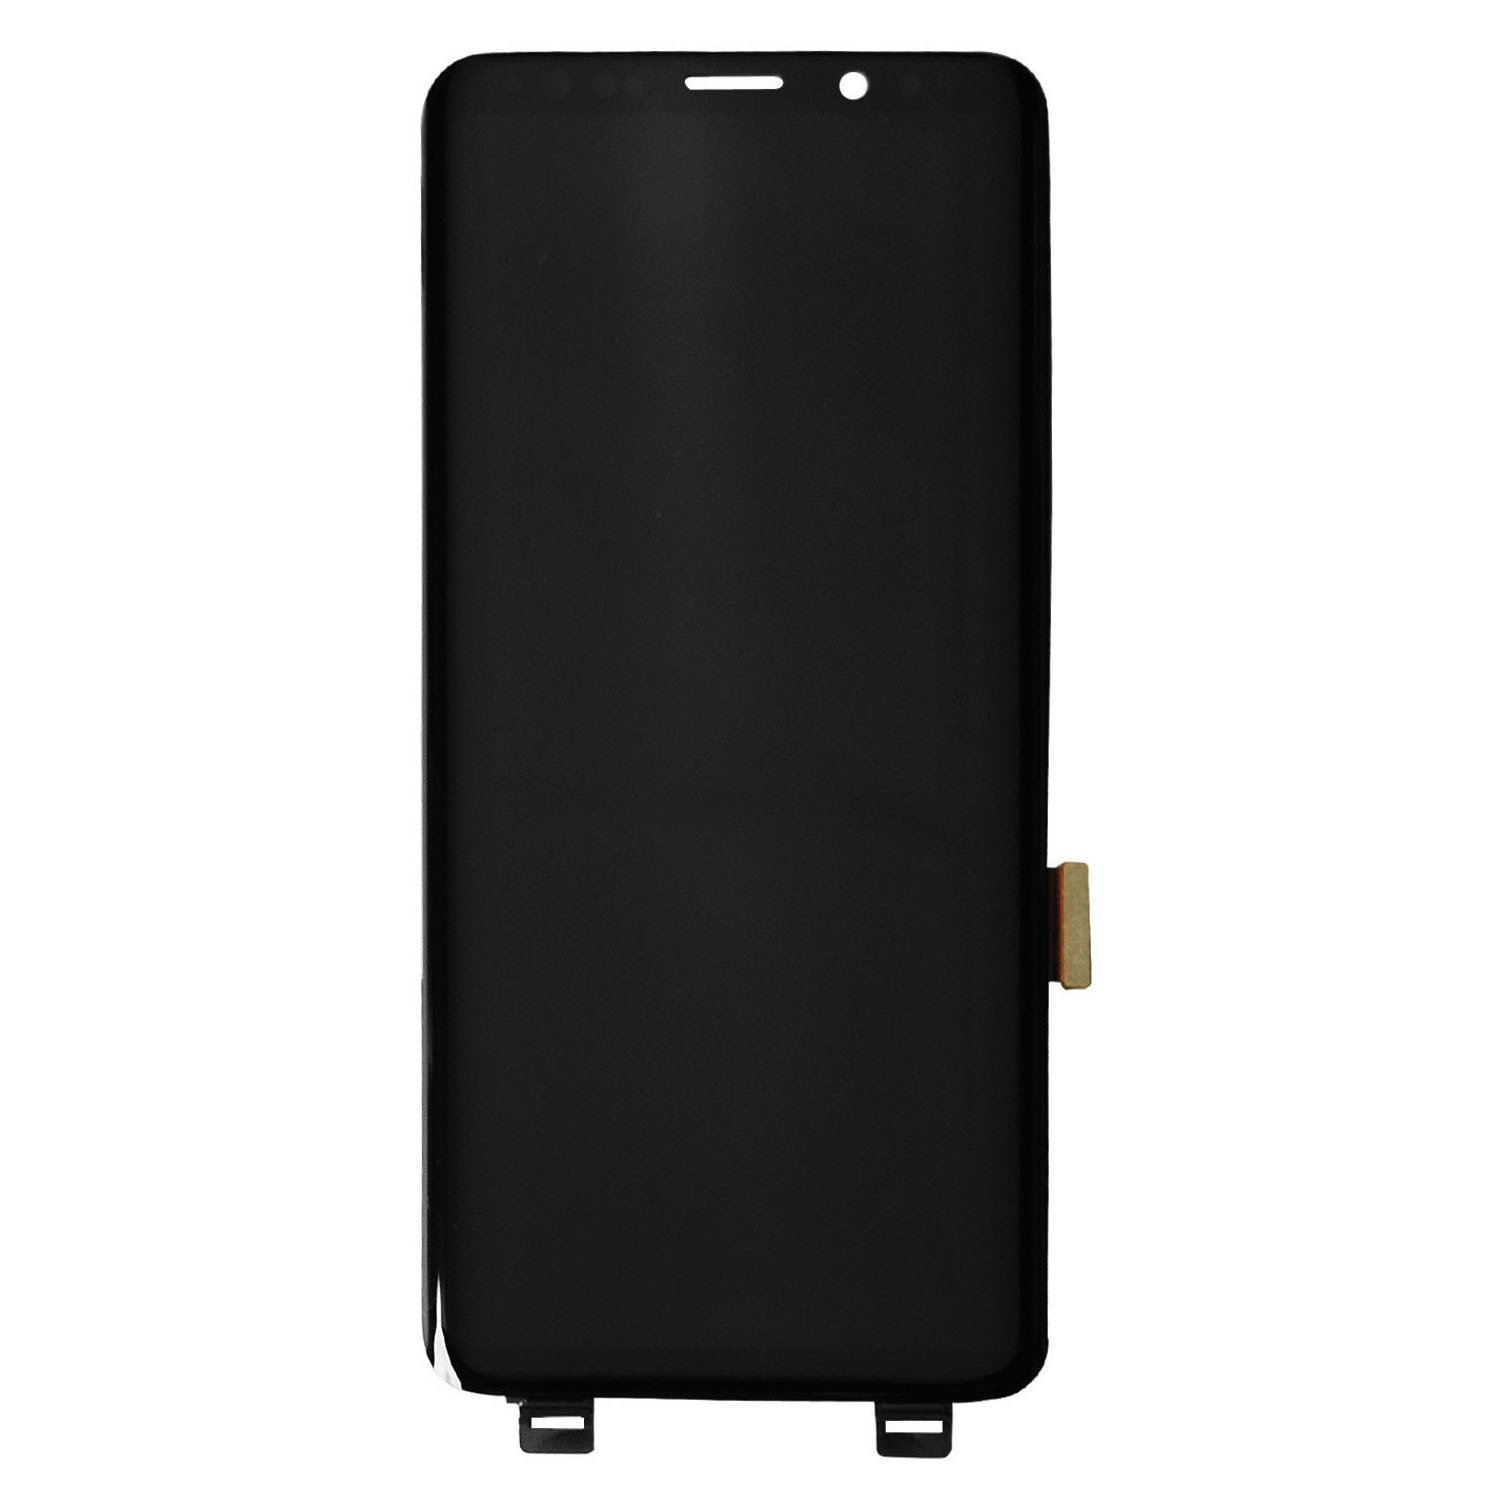 Samsung Galaxy S9 Plus Screen Replacement - Black